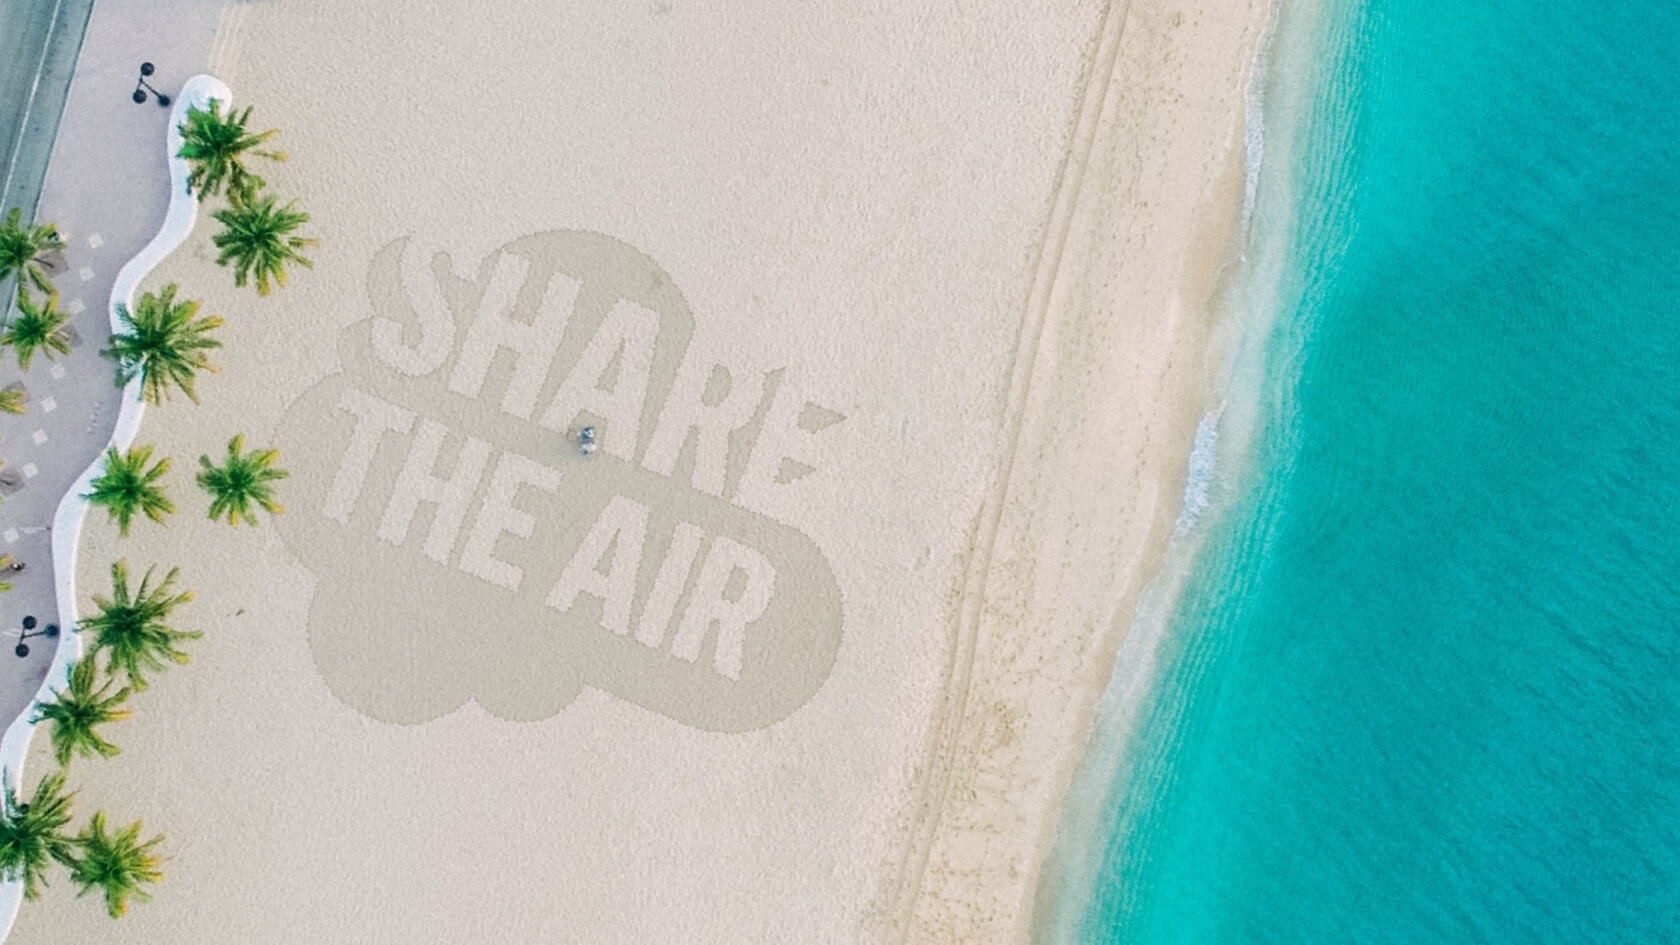 Share the Air social activations